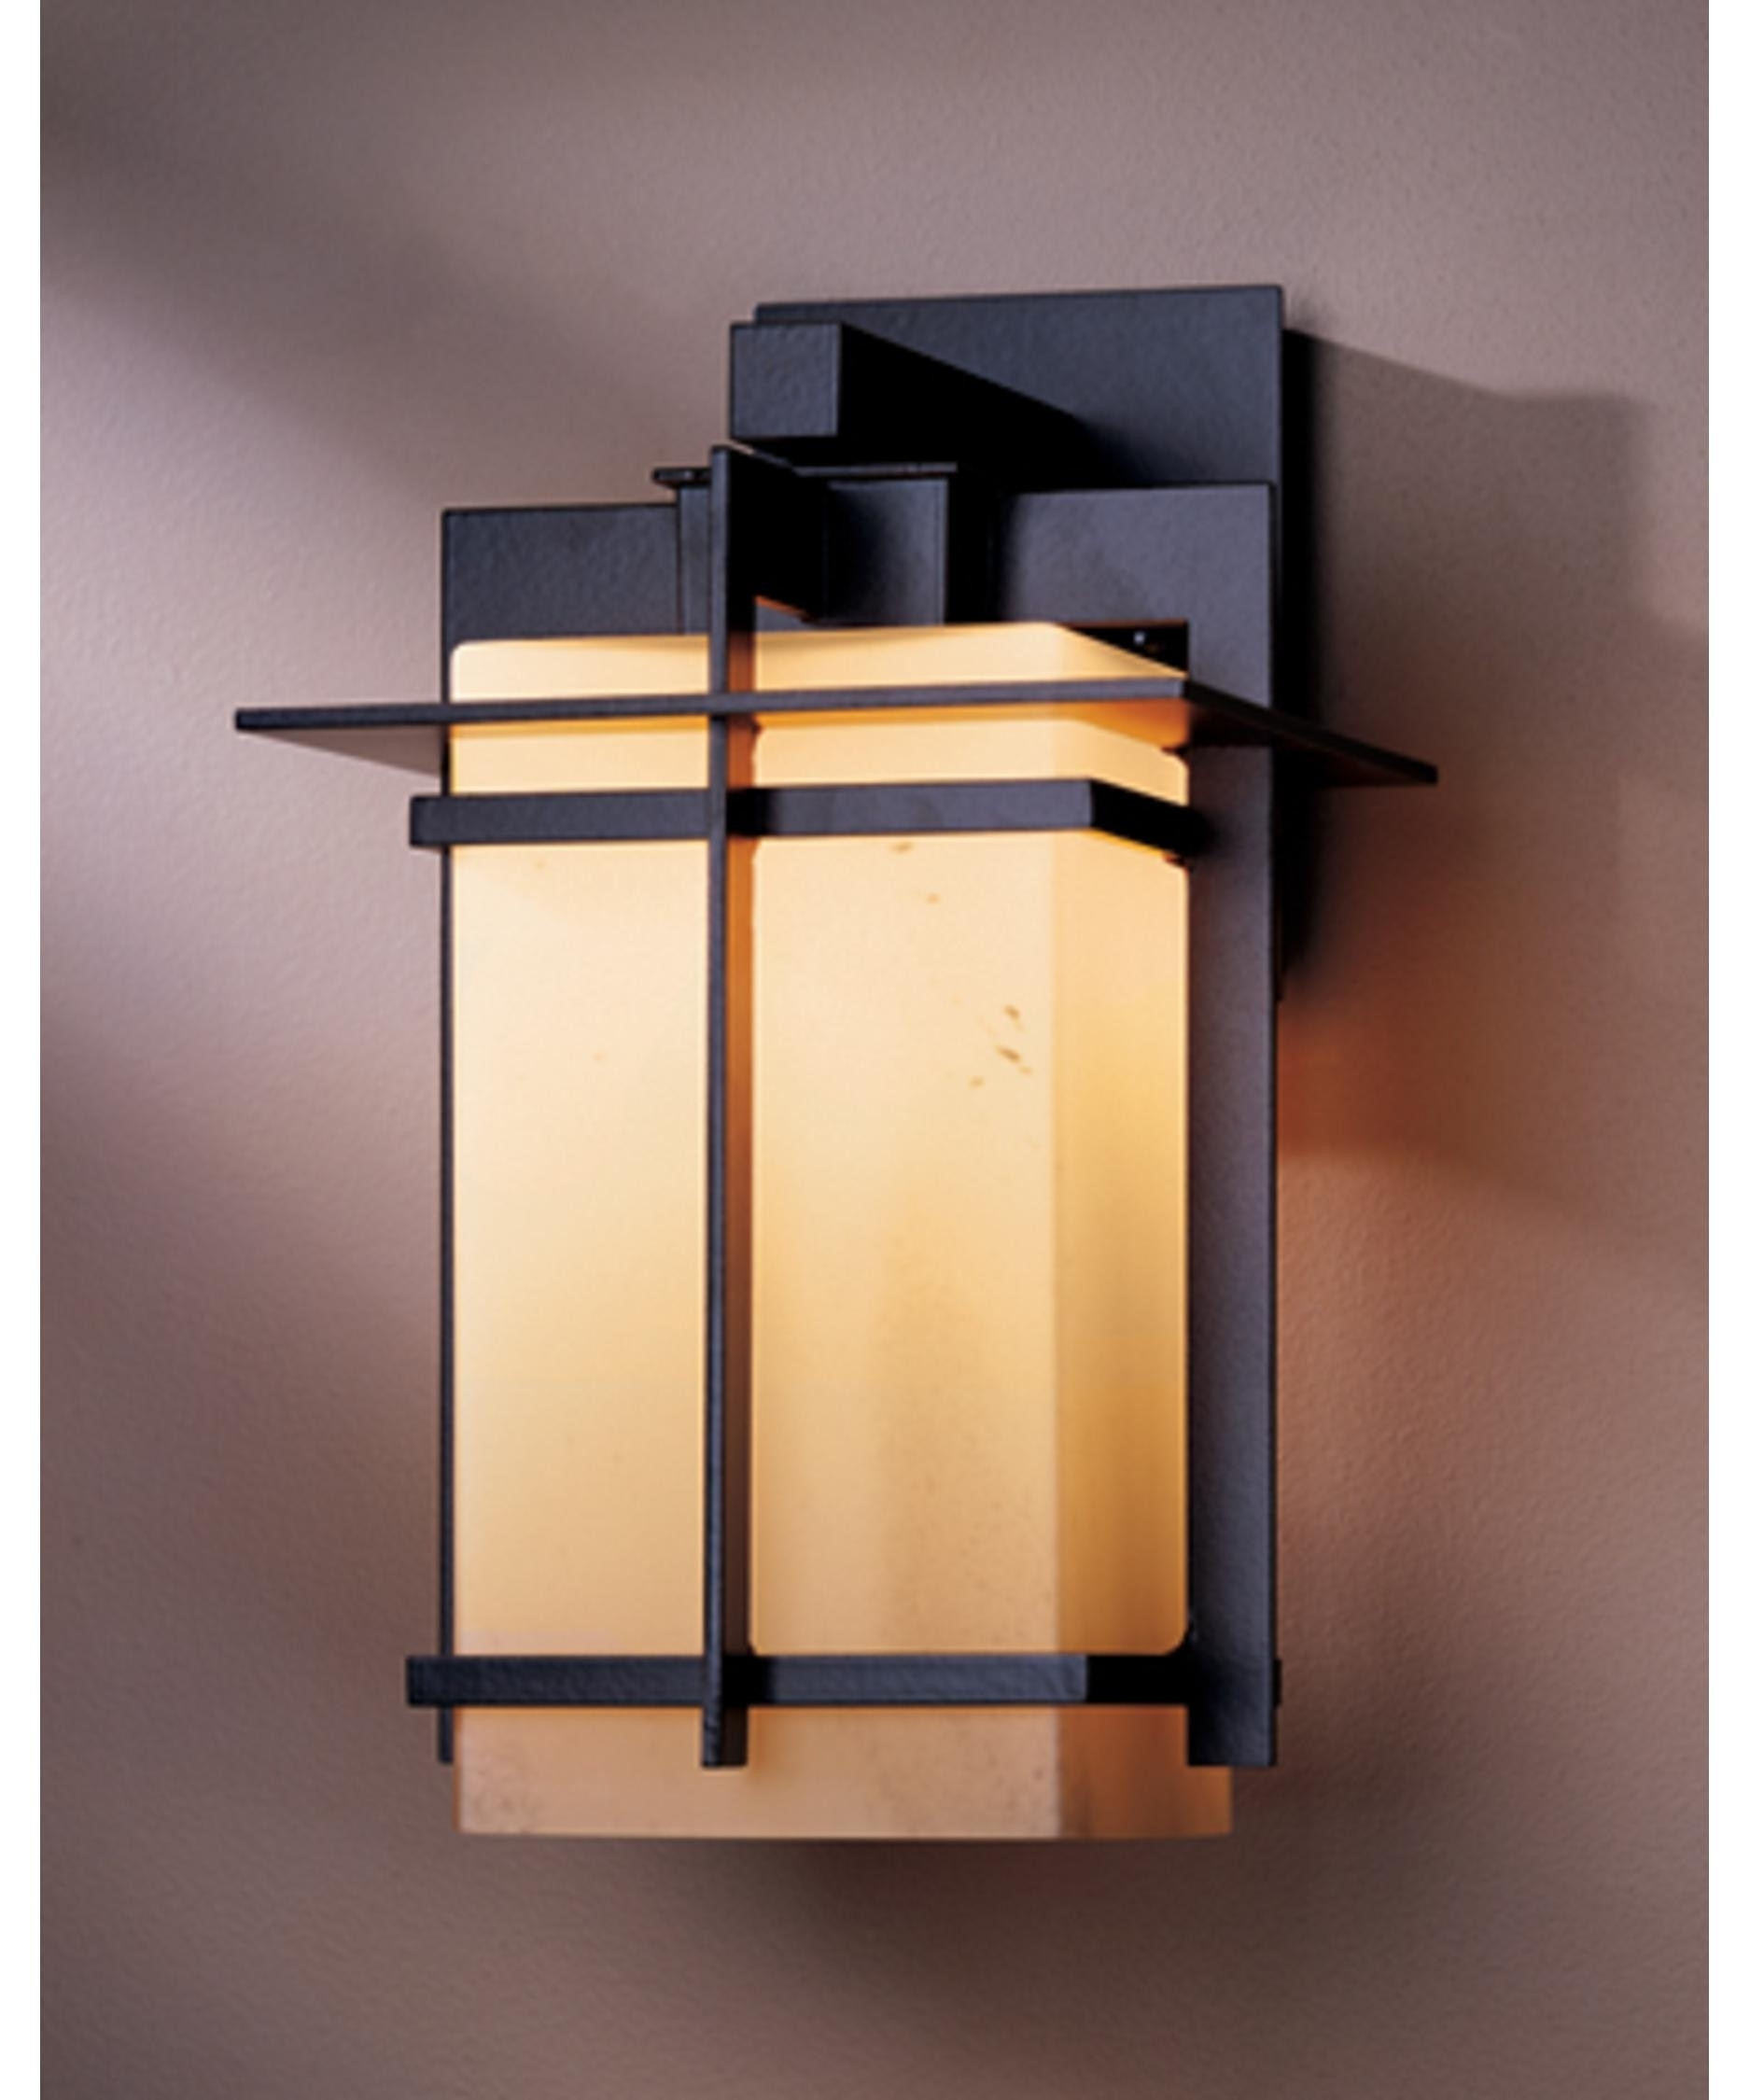 Inspiration about Interior: Modern Wall Lighting For Exterior With Black Frame And Regarding Cheap Outdoor Wall Lighting (#9 of 15)